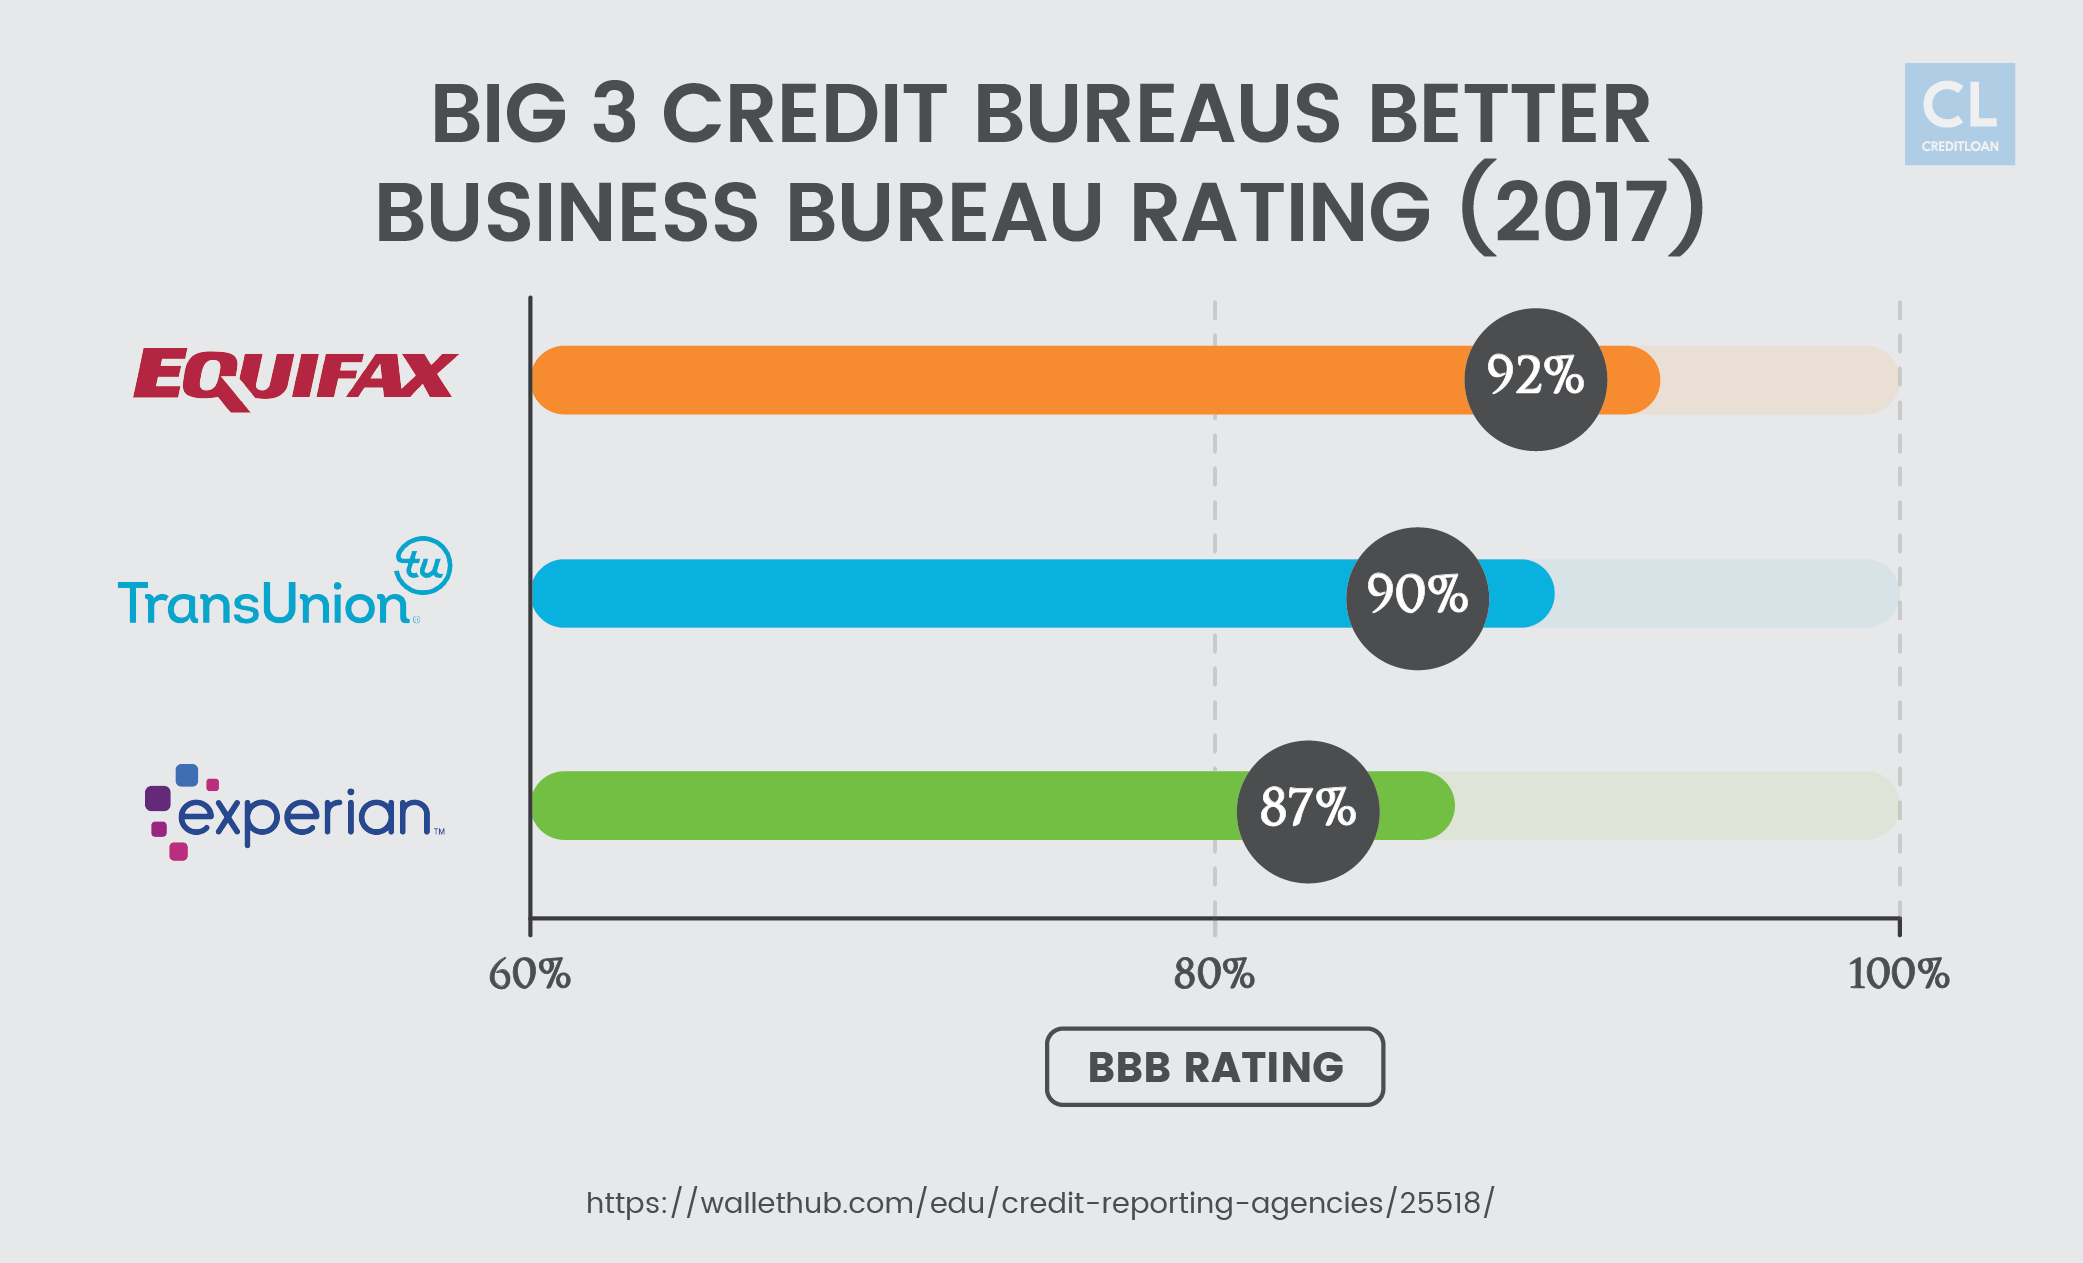 Big 3 Credit Bureaus Better Business Bureau Rating